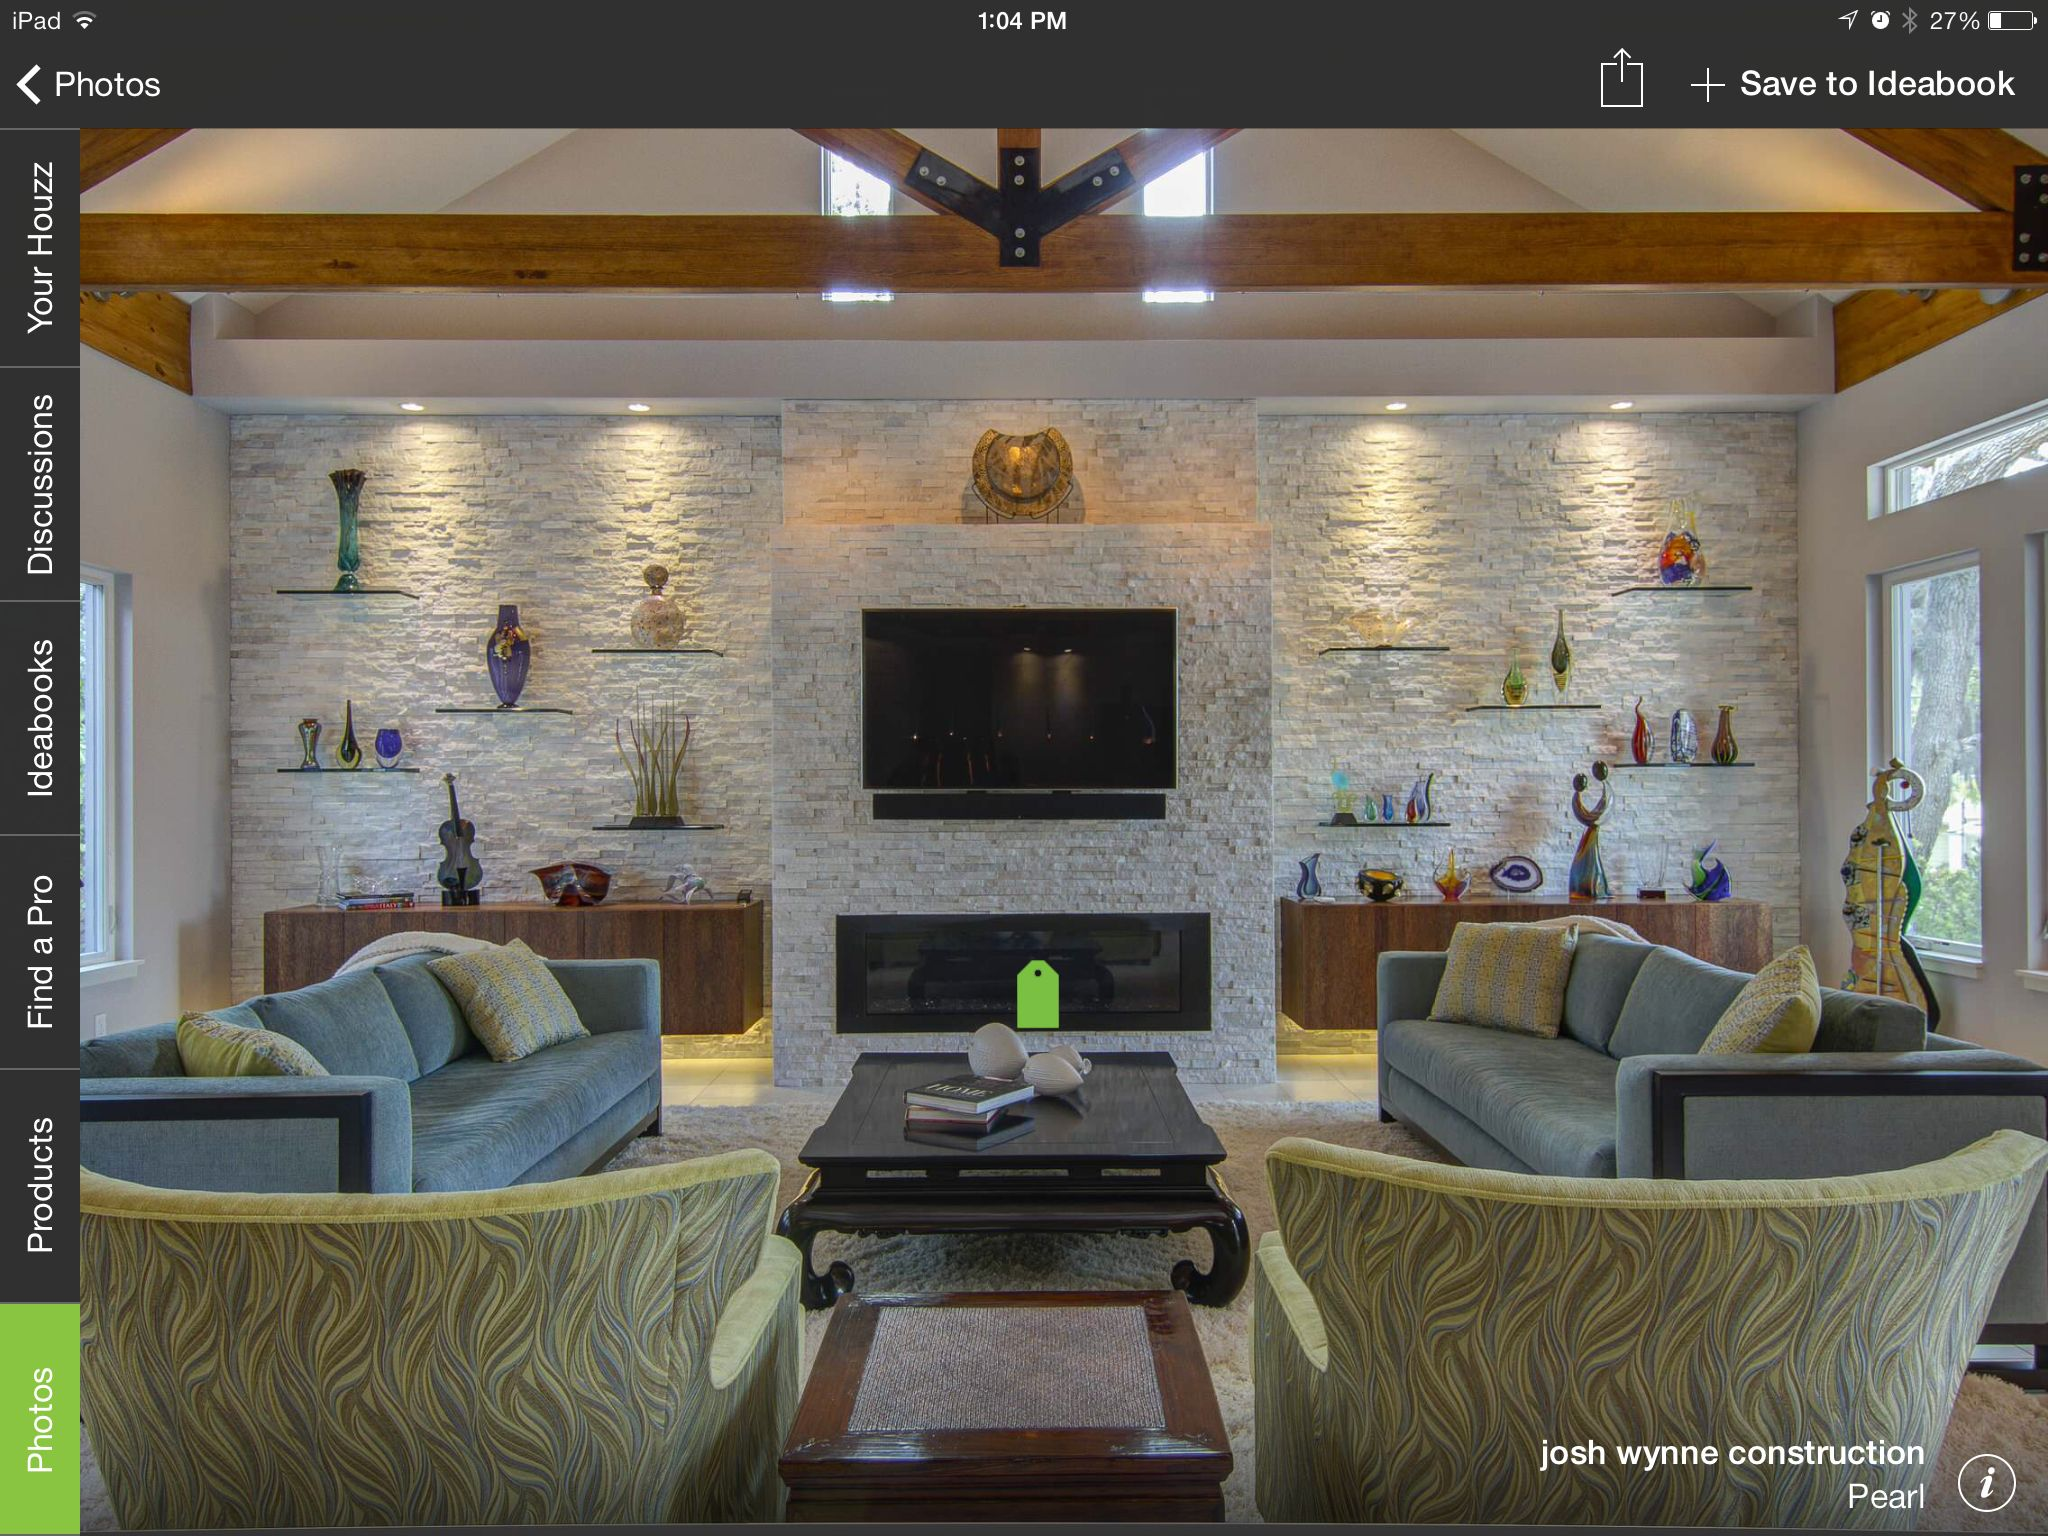 The backsplash and entertainment center would look amazing in our